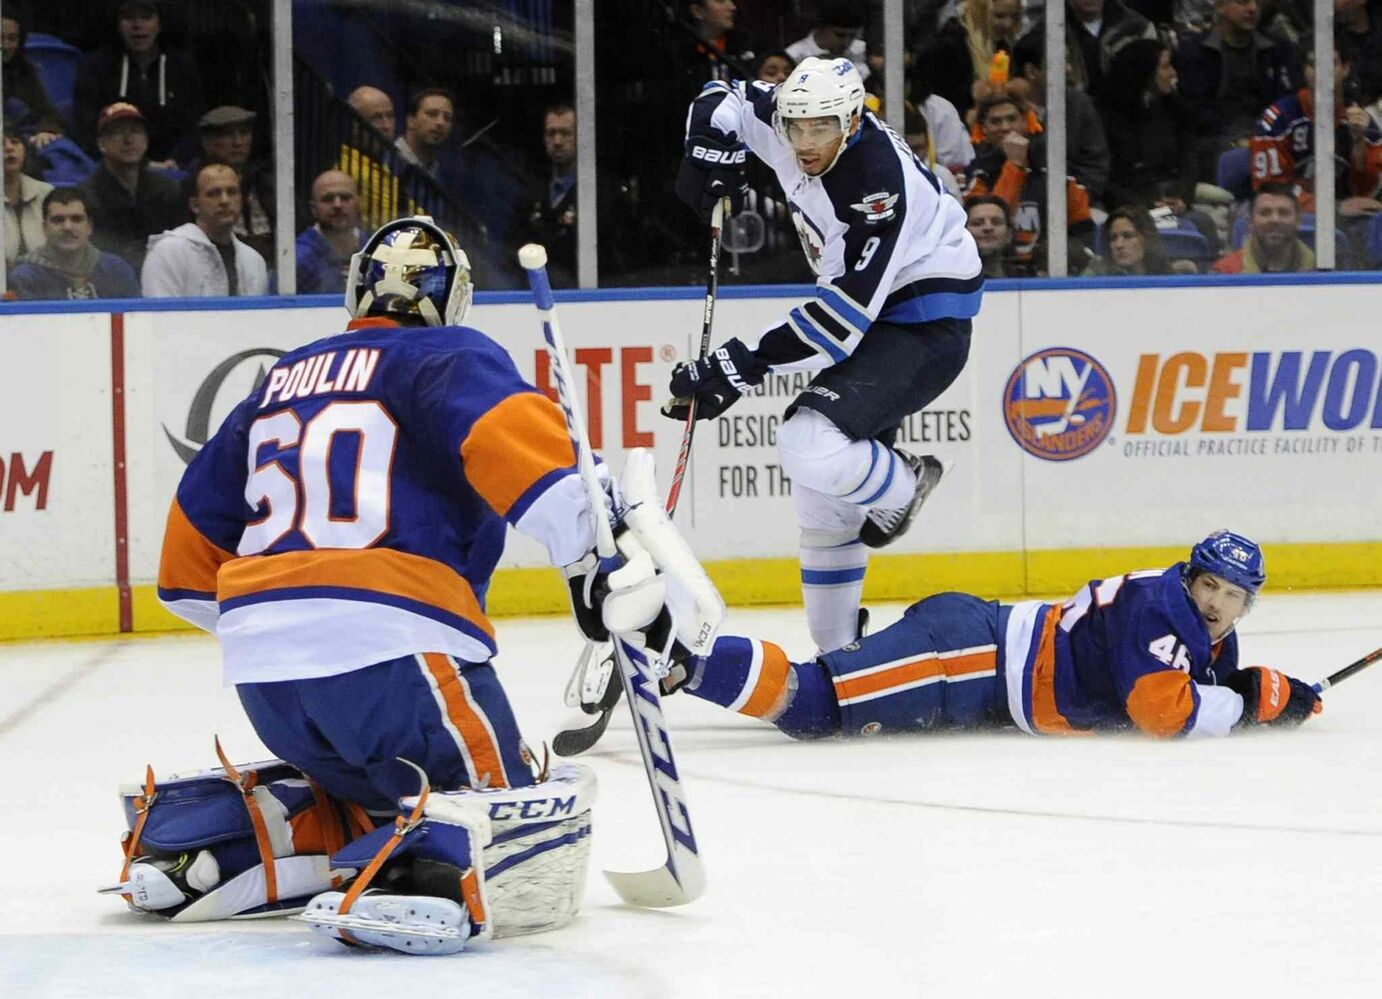 Winnipeg Jets' Evander Kane (centre) skips over a fallen New York Islanders' Matt Donovan (right) to take a shot on goal at goalie Kevin Poulin in the first period. (Kathy Kmonicek / The Associated Press)